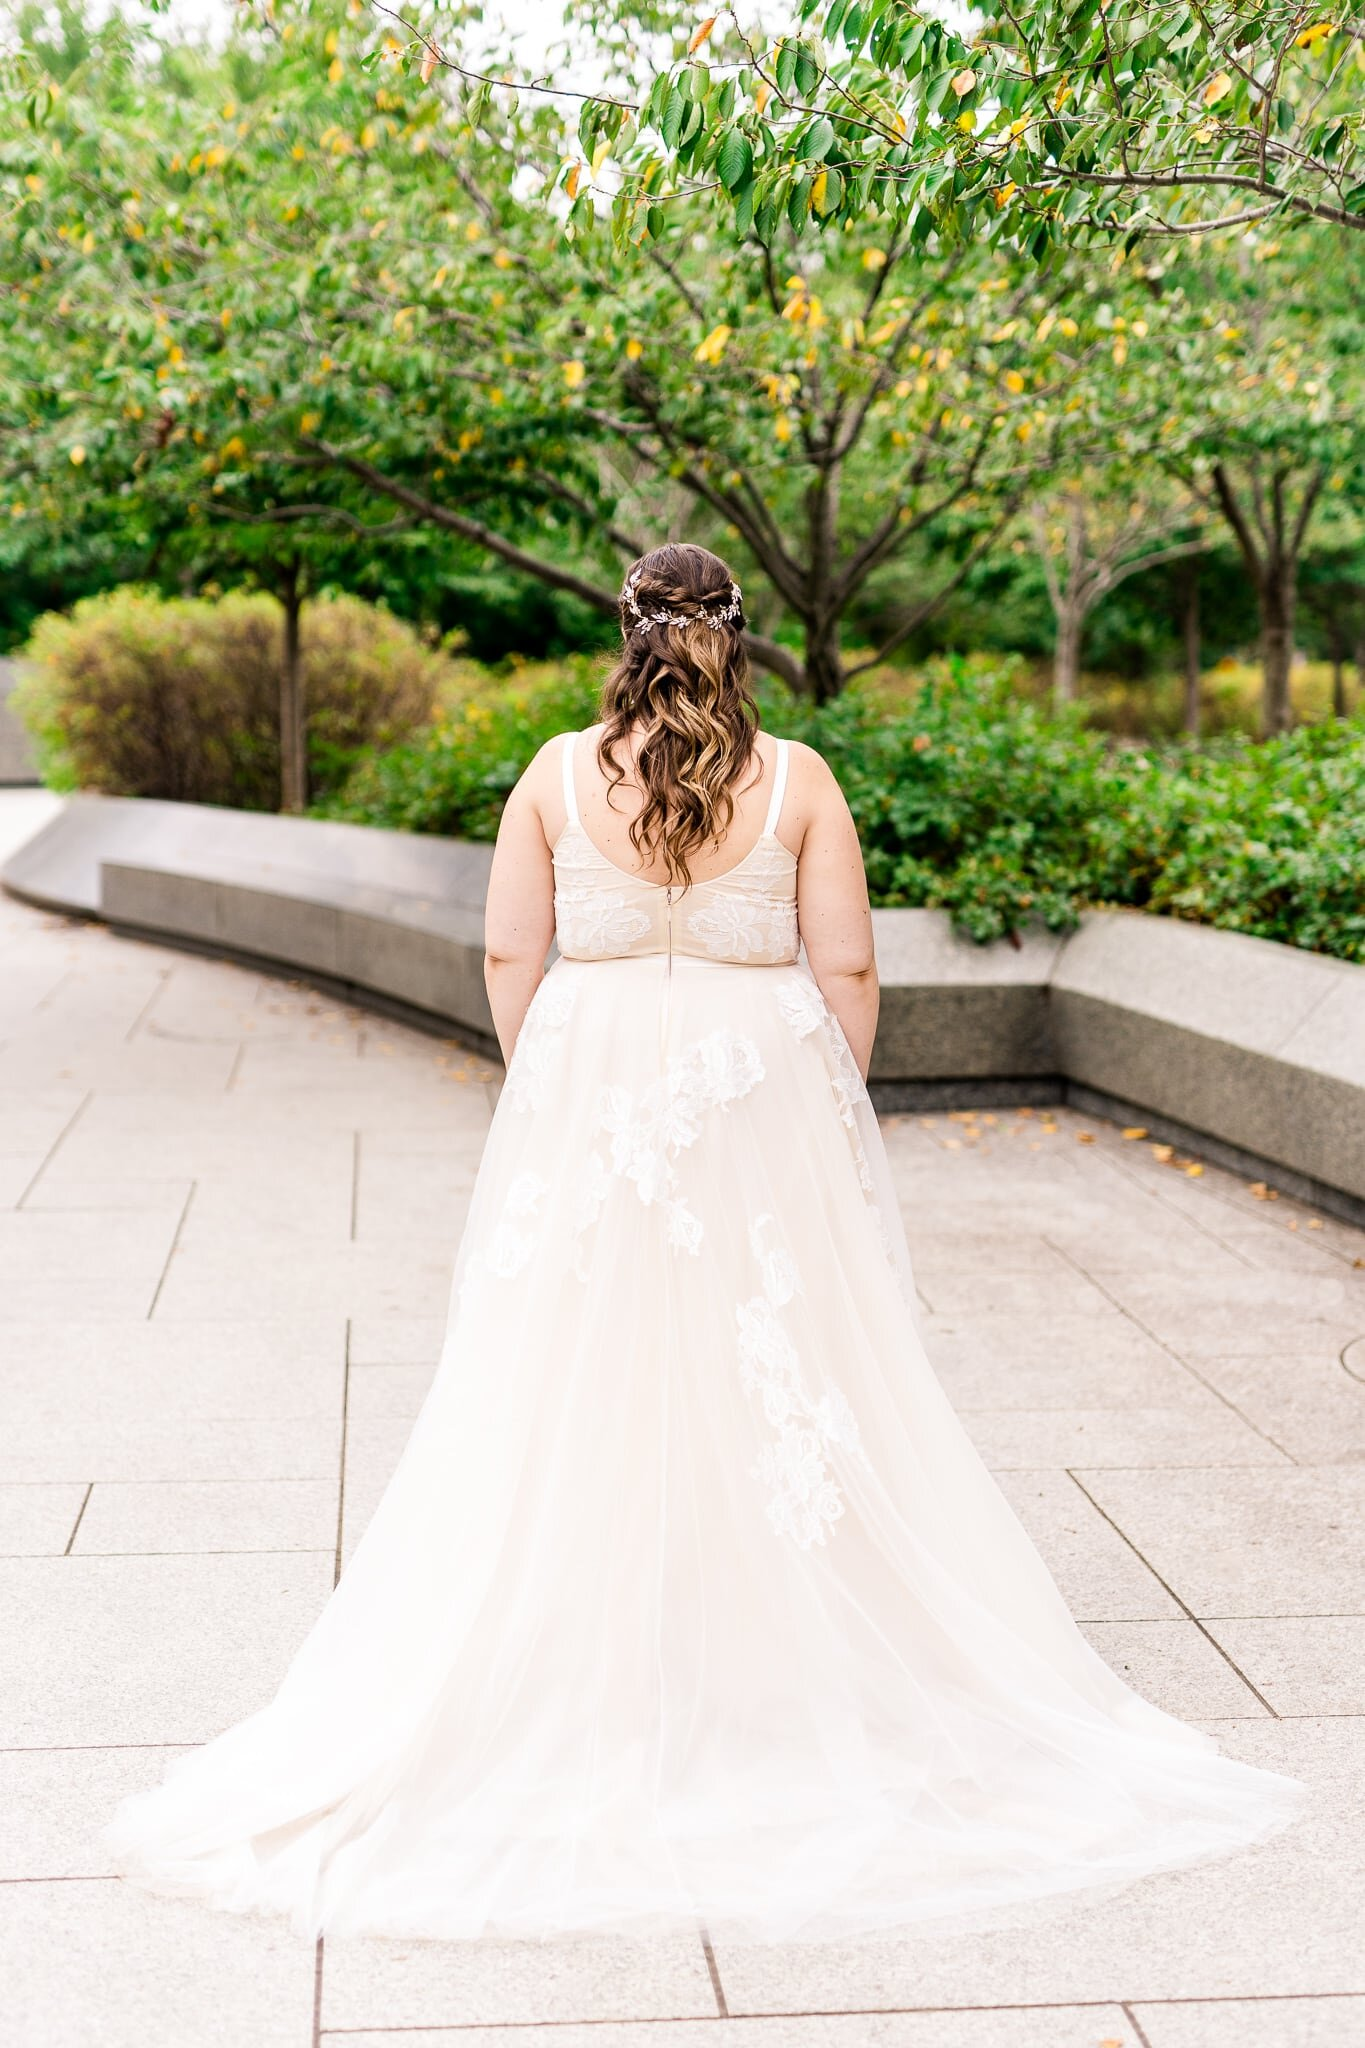 A bride faces away from the camera to show off the details on the back of her dress and her hair on her wedding day at the Tidal Basin near the MLK Memorial in Washington, DC